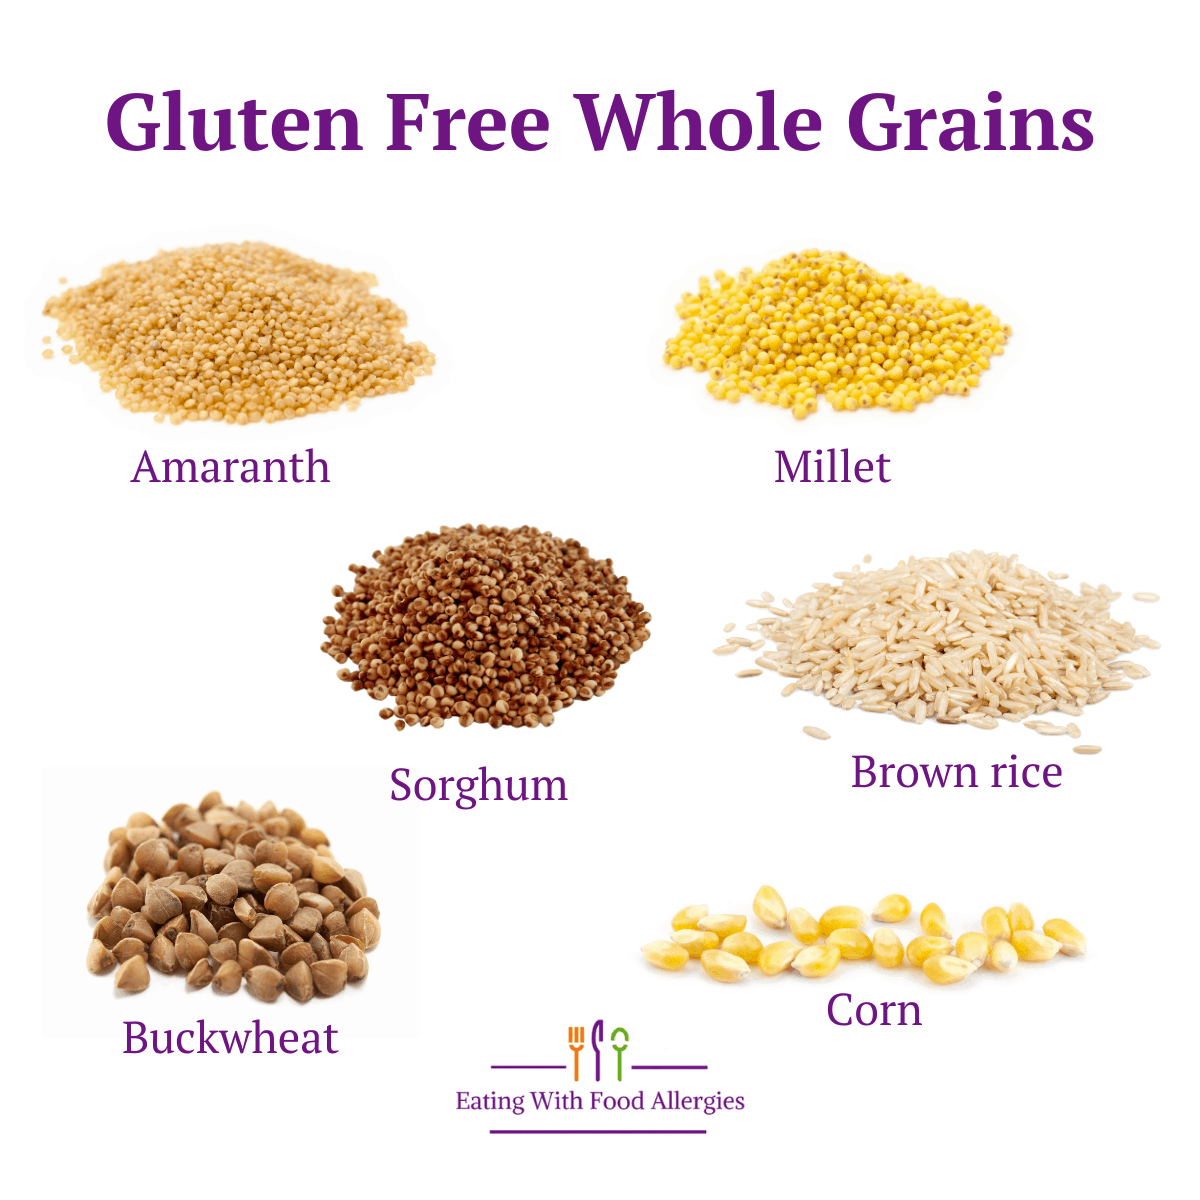 A variety of gluten free whole grains including amaranth, millet, sorghum, brown rice, buckwheat, and corn.